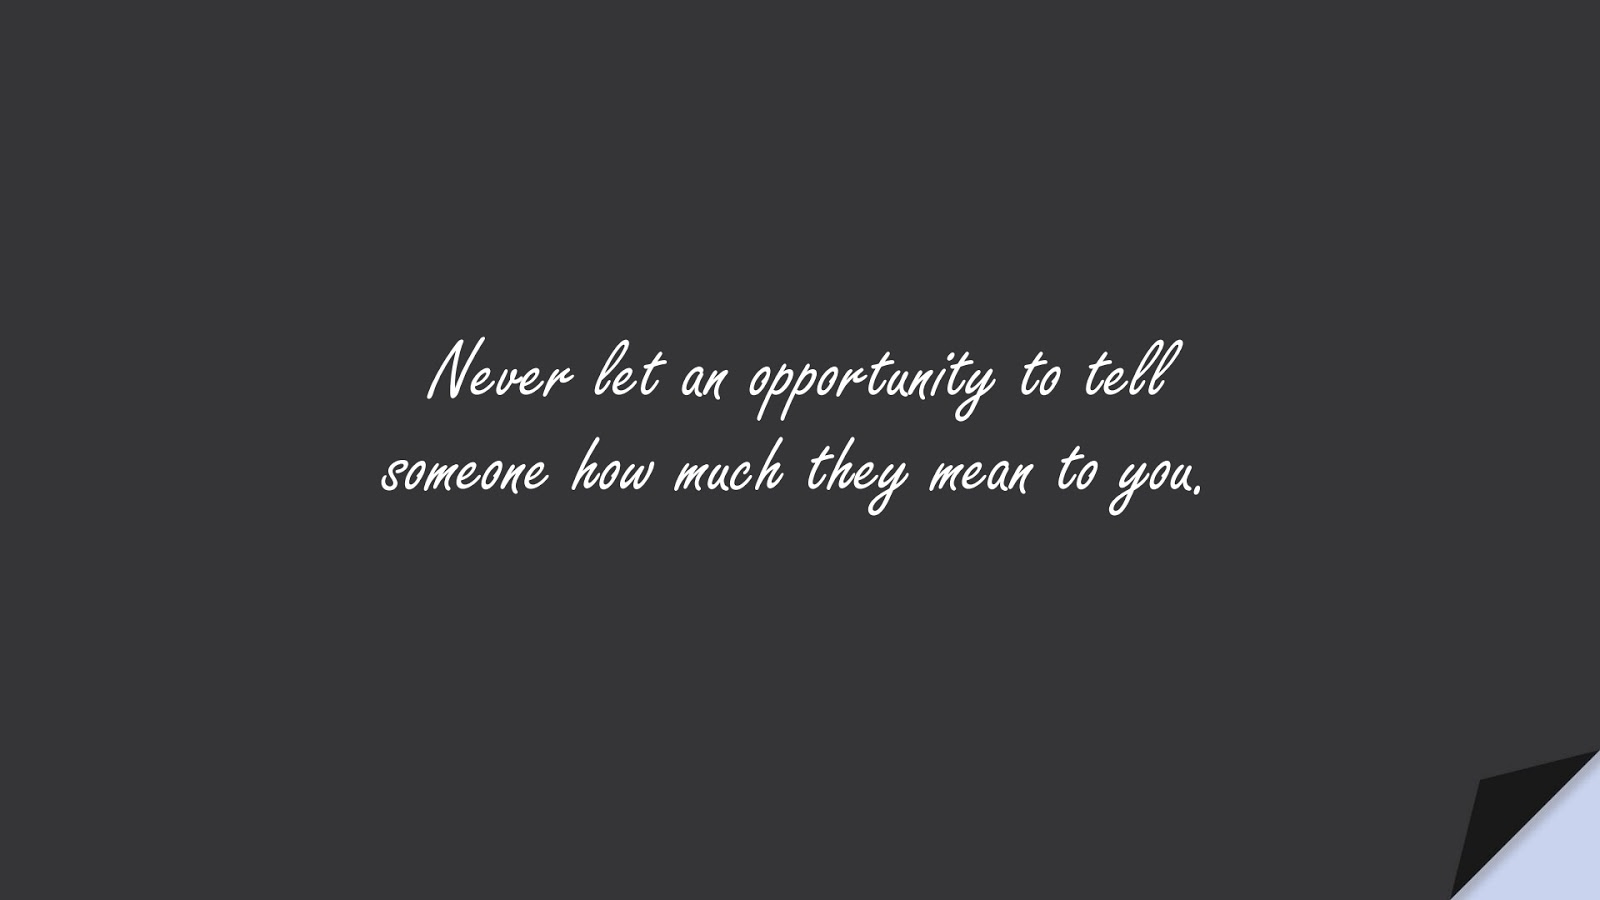 Never let an opportunity to tell someone how much they mean to you.FALSE